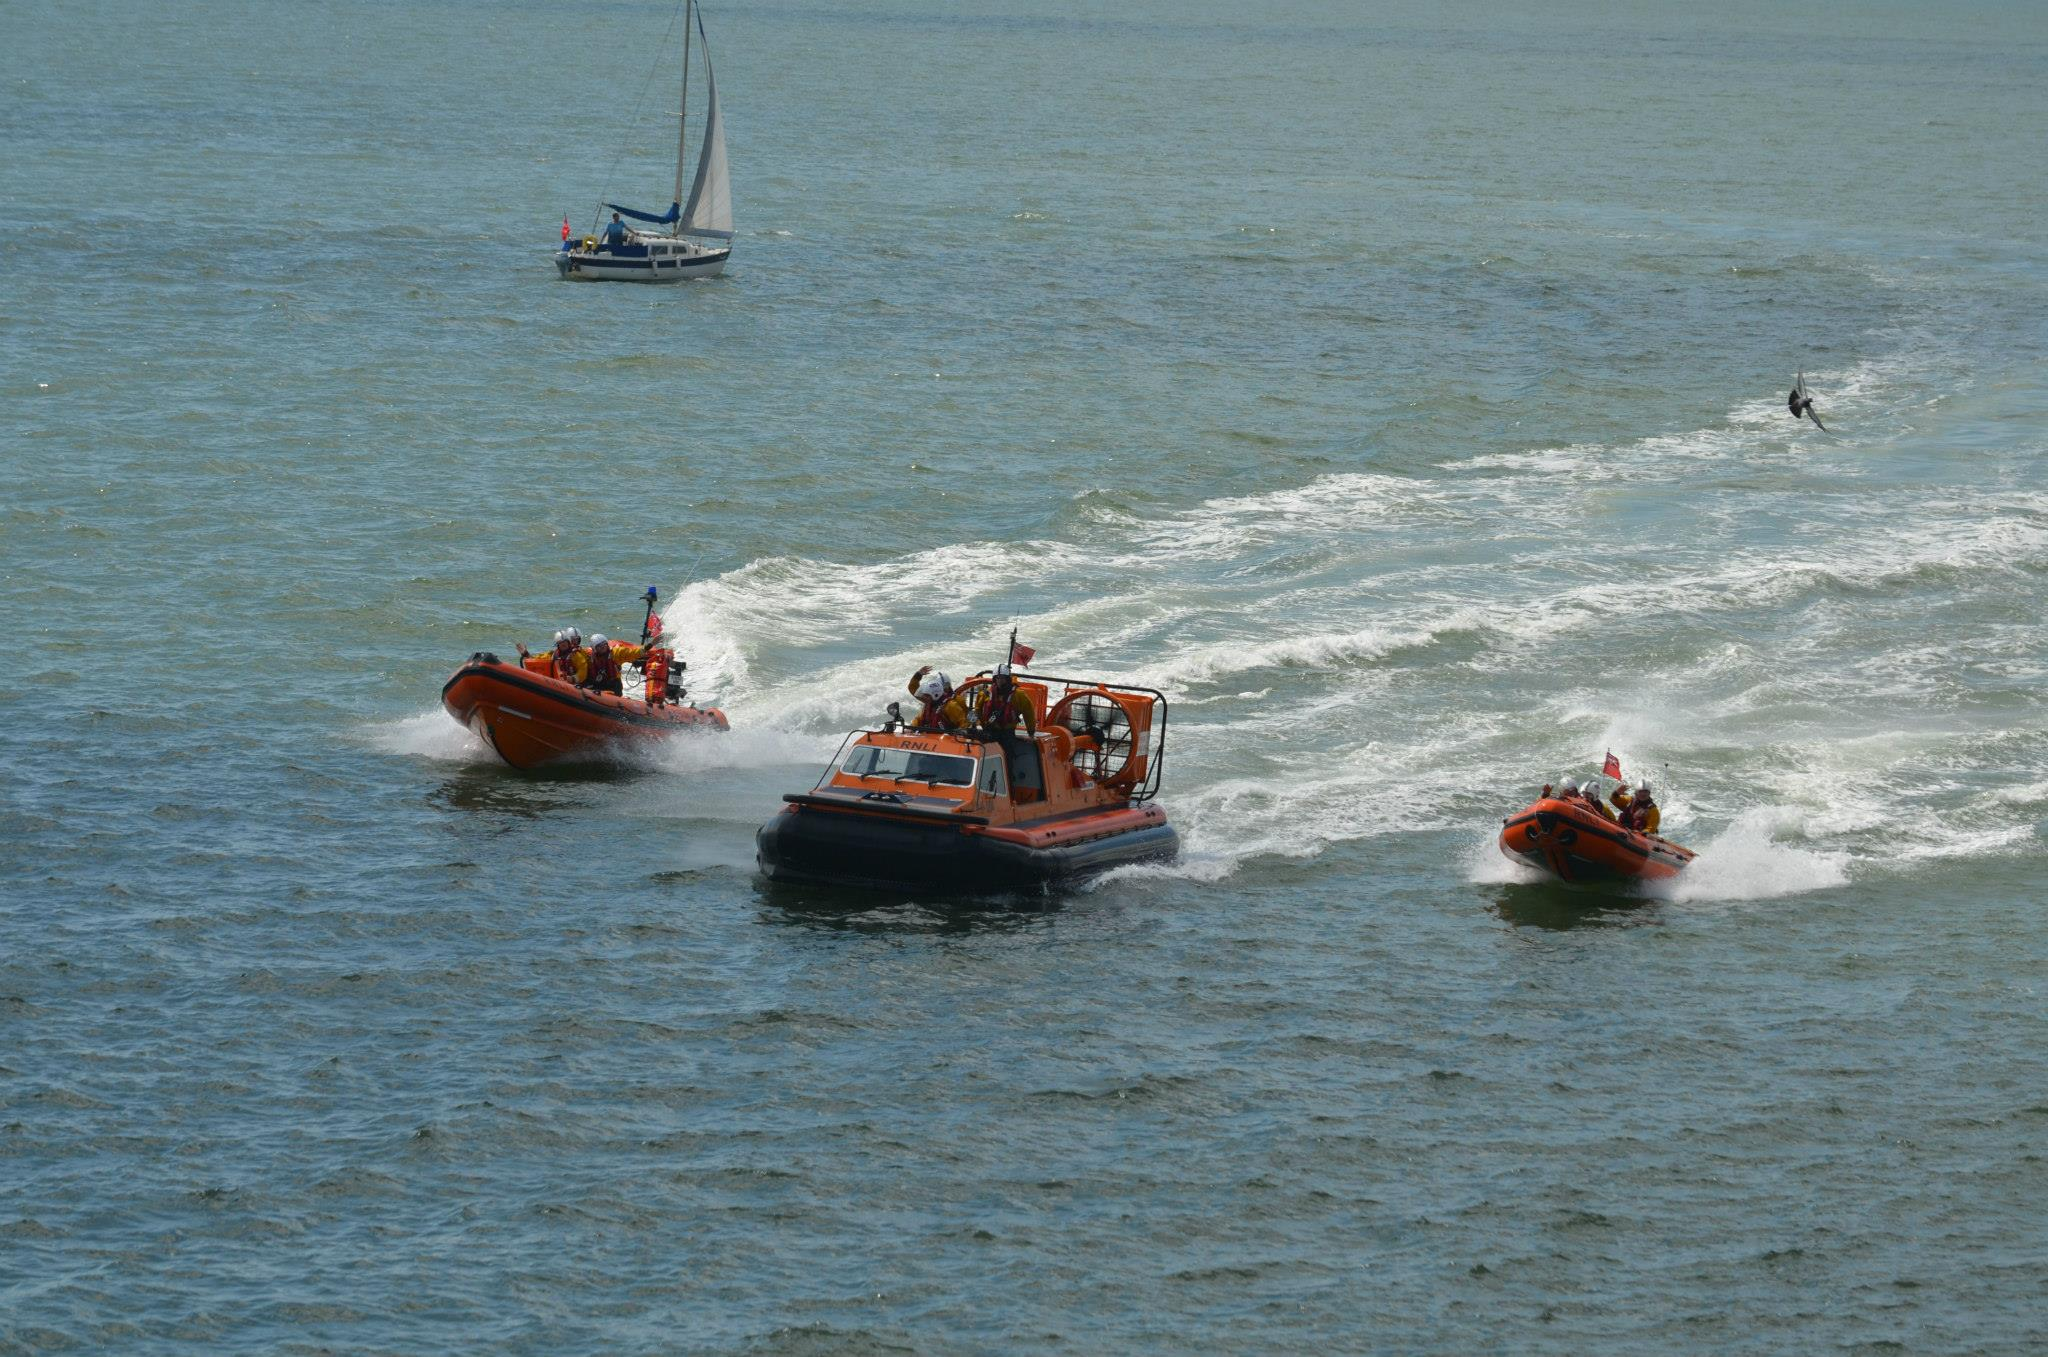 All three boats in action